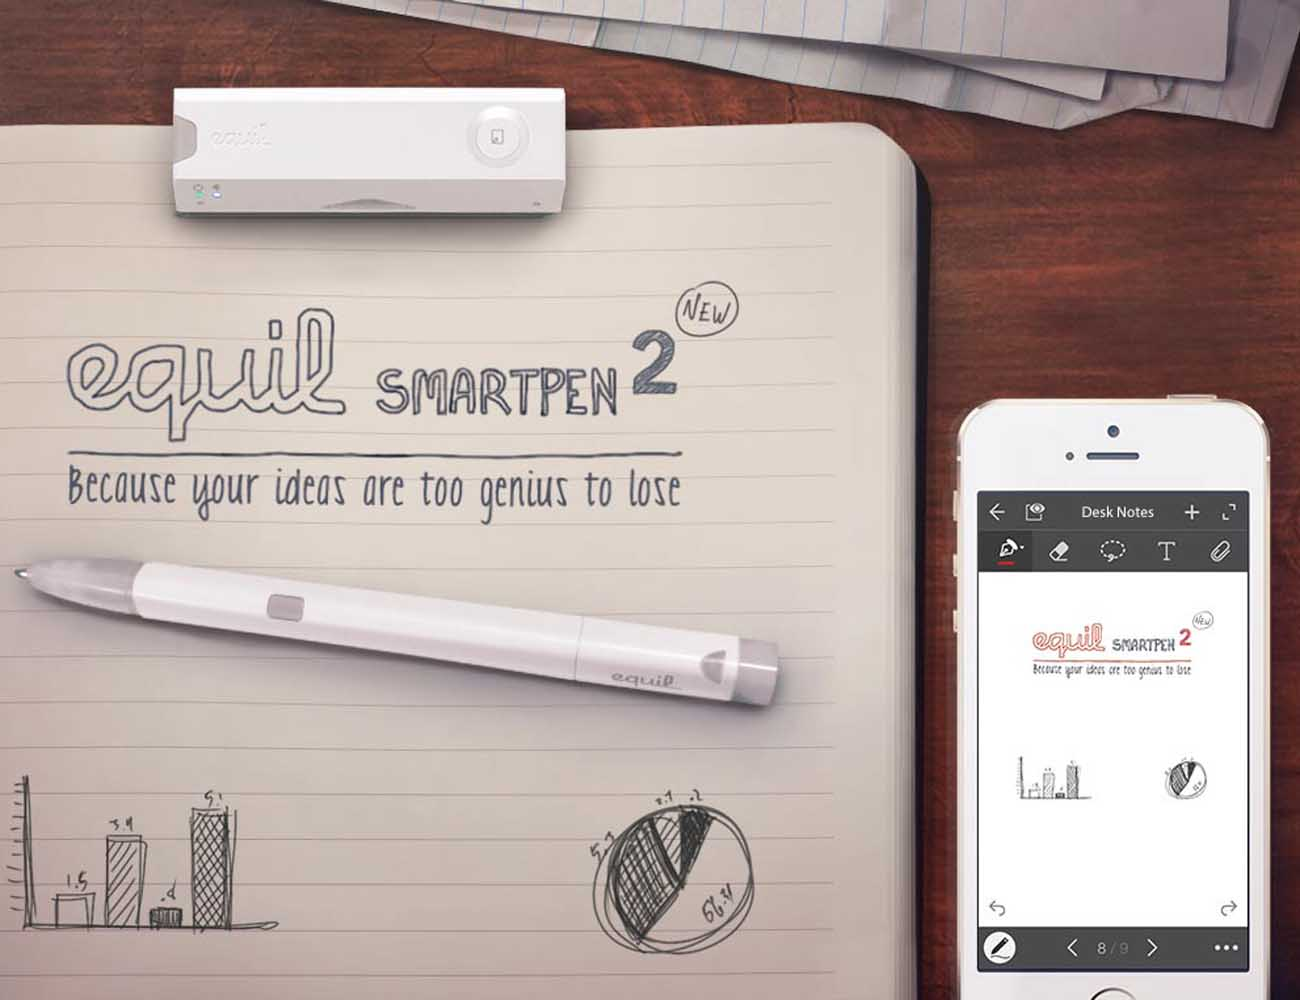 Equil Smartpen 2 – Transfer Handwritten Notes to the Cloud